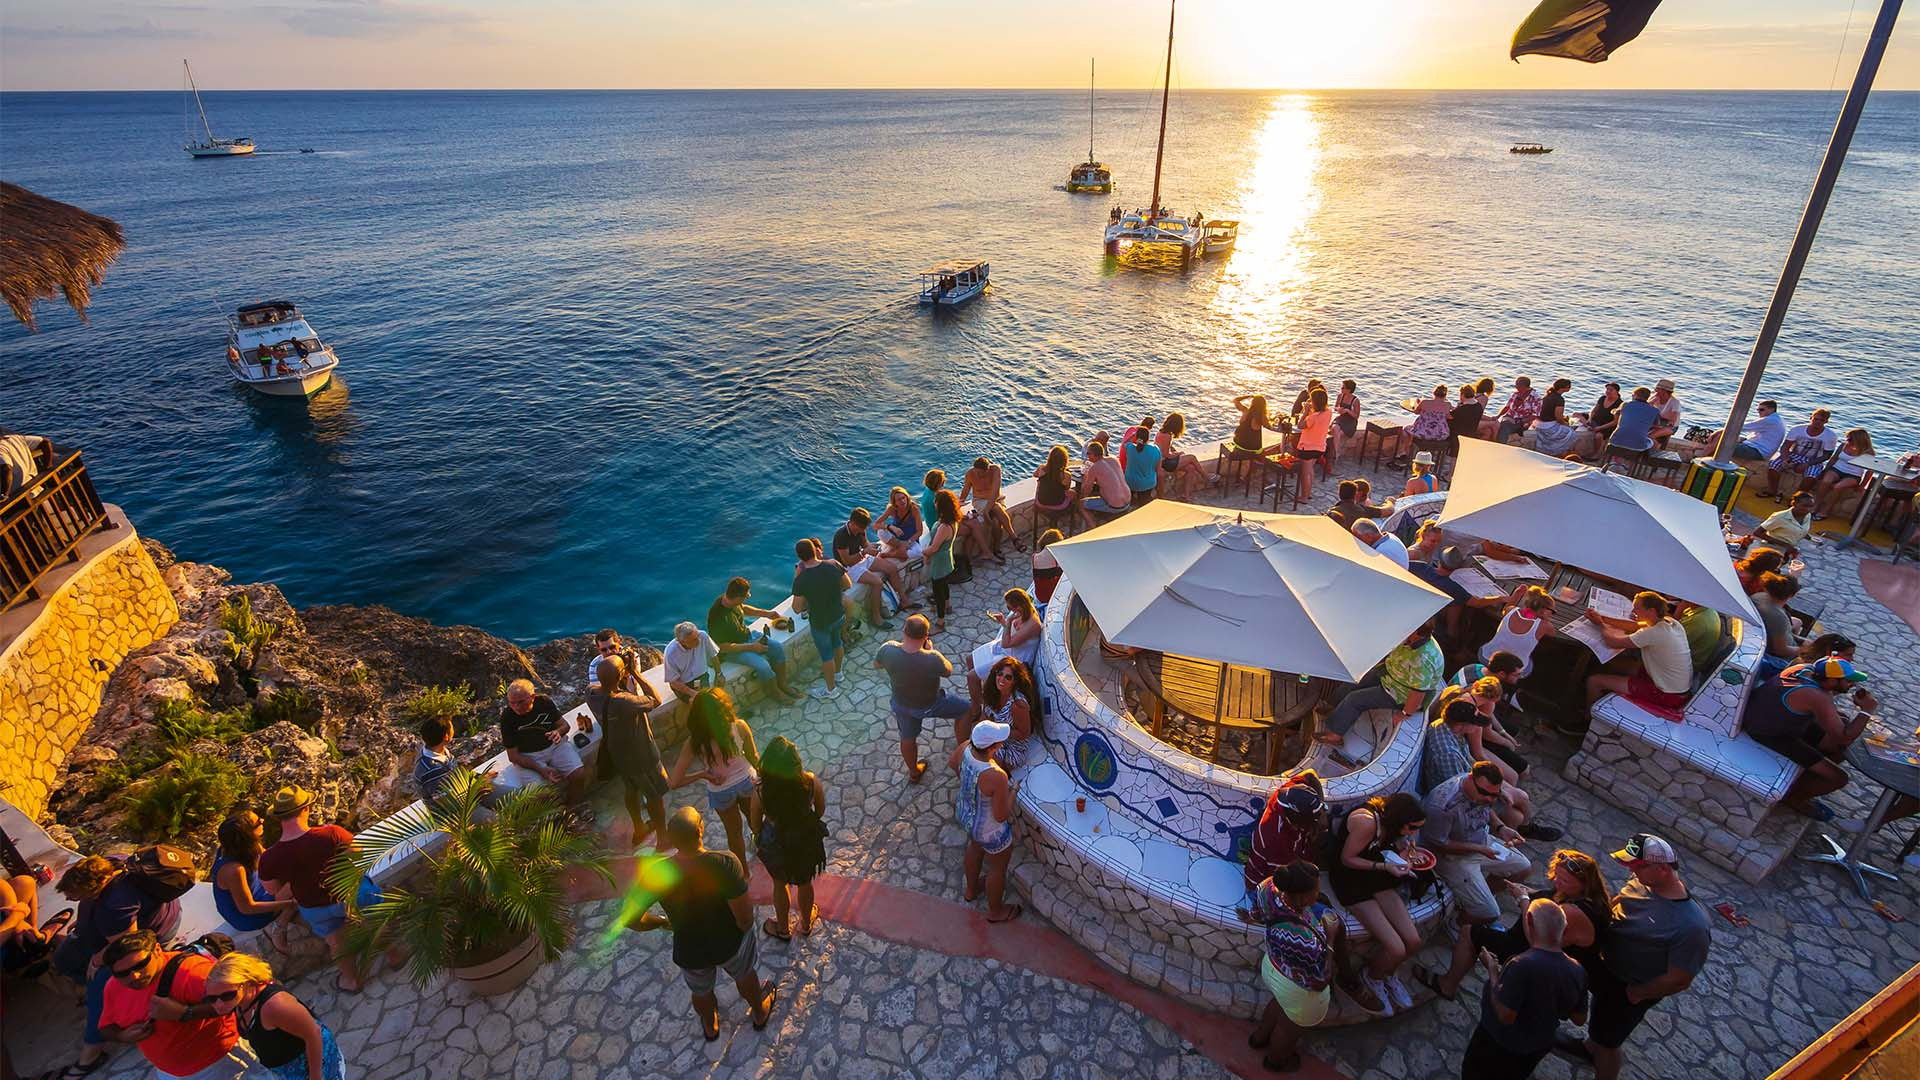 View of the terrace at Rick's Café with the sunset over the Caribbean sea